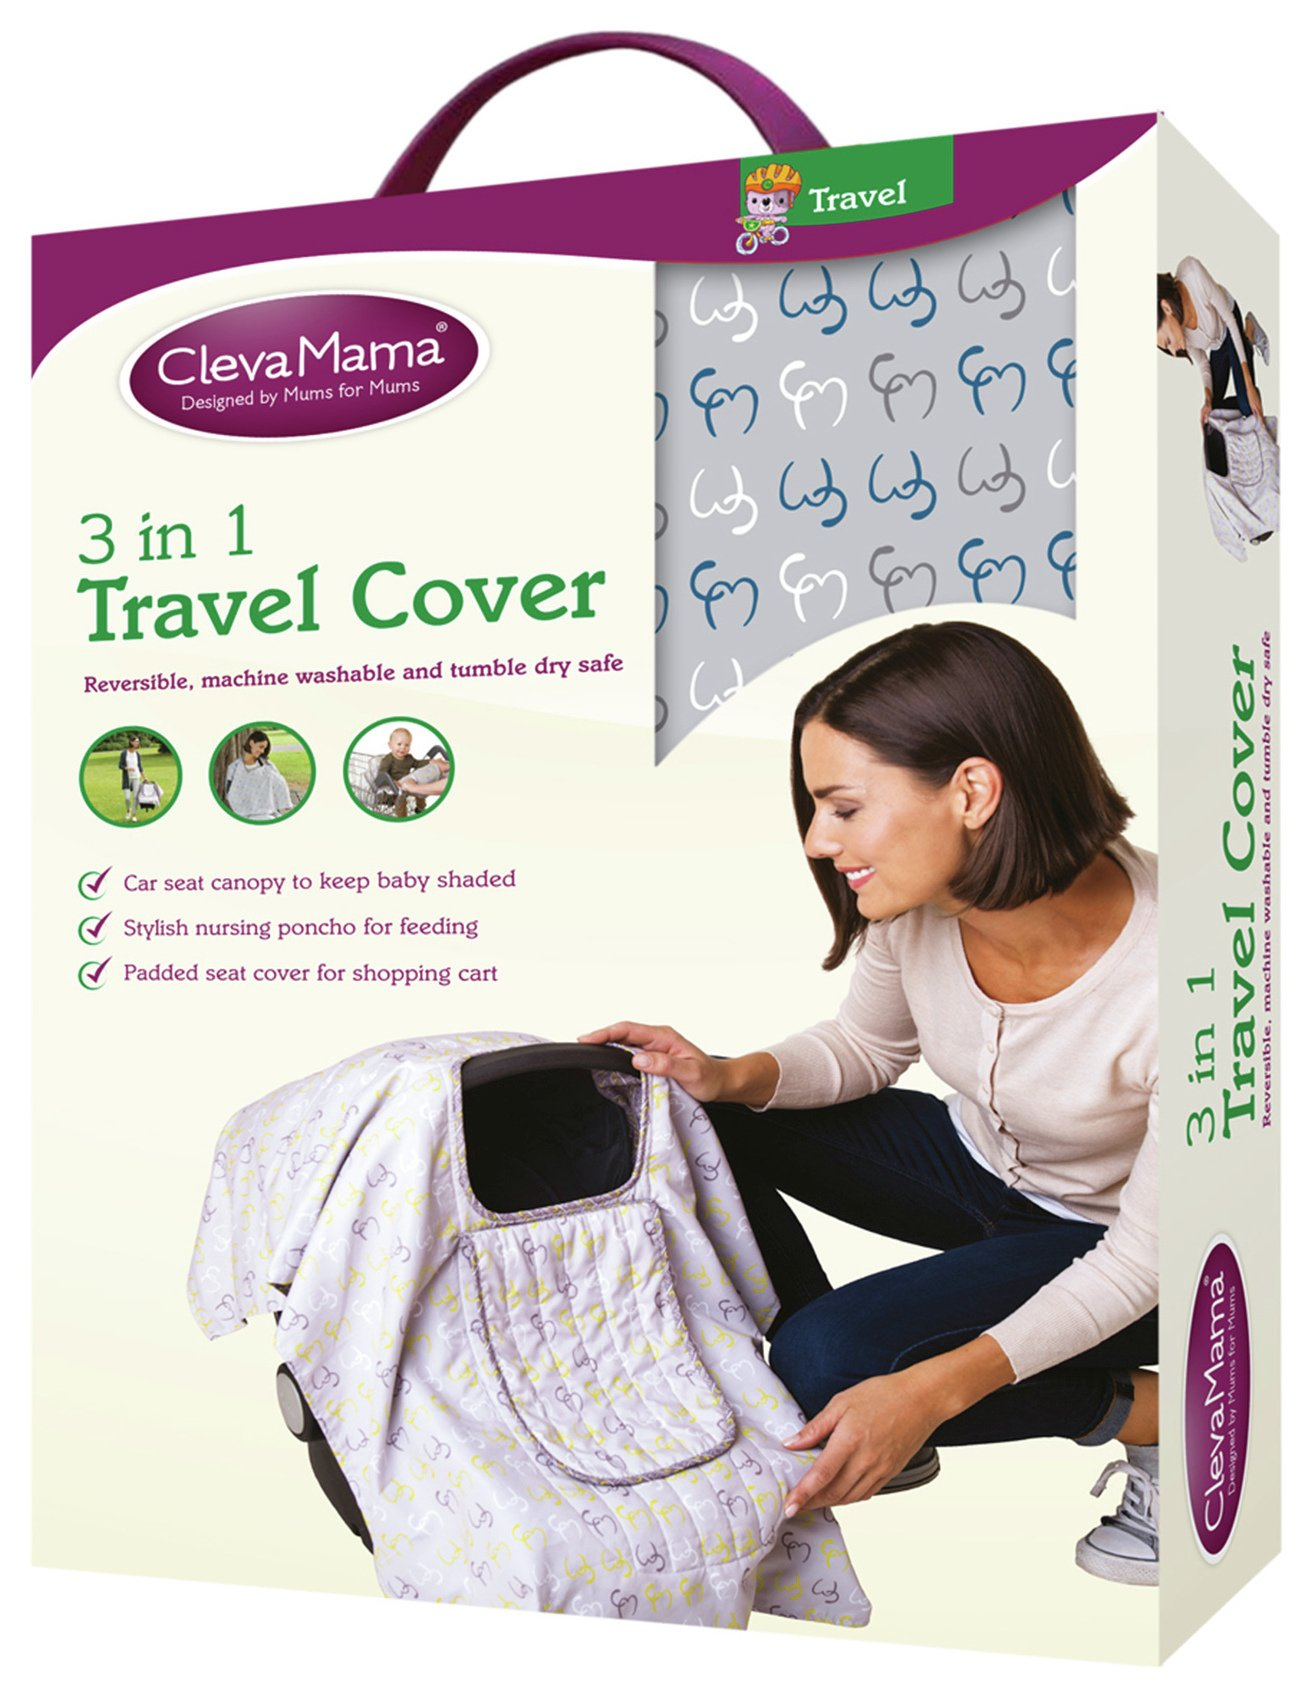 Clevamama 3 in 1 Travel Cover - Capri